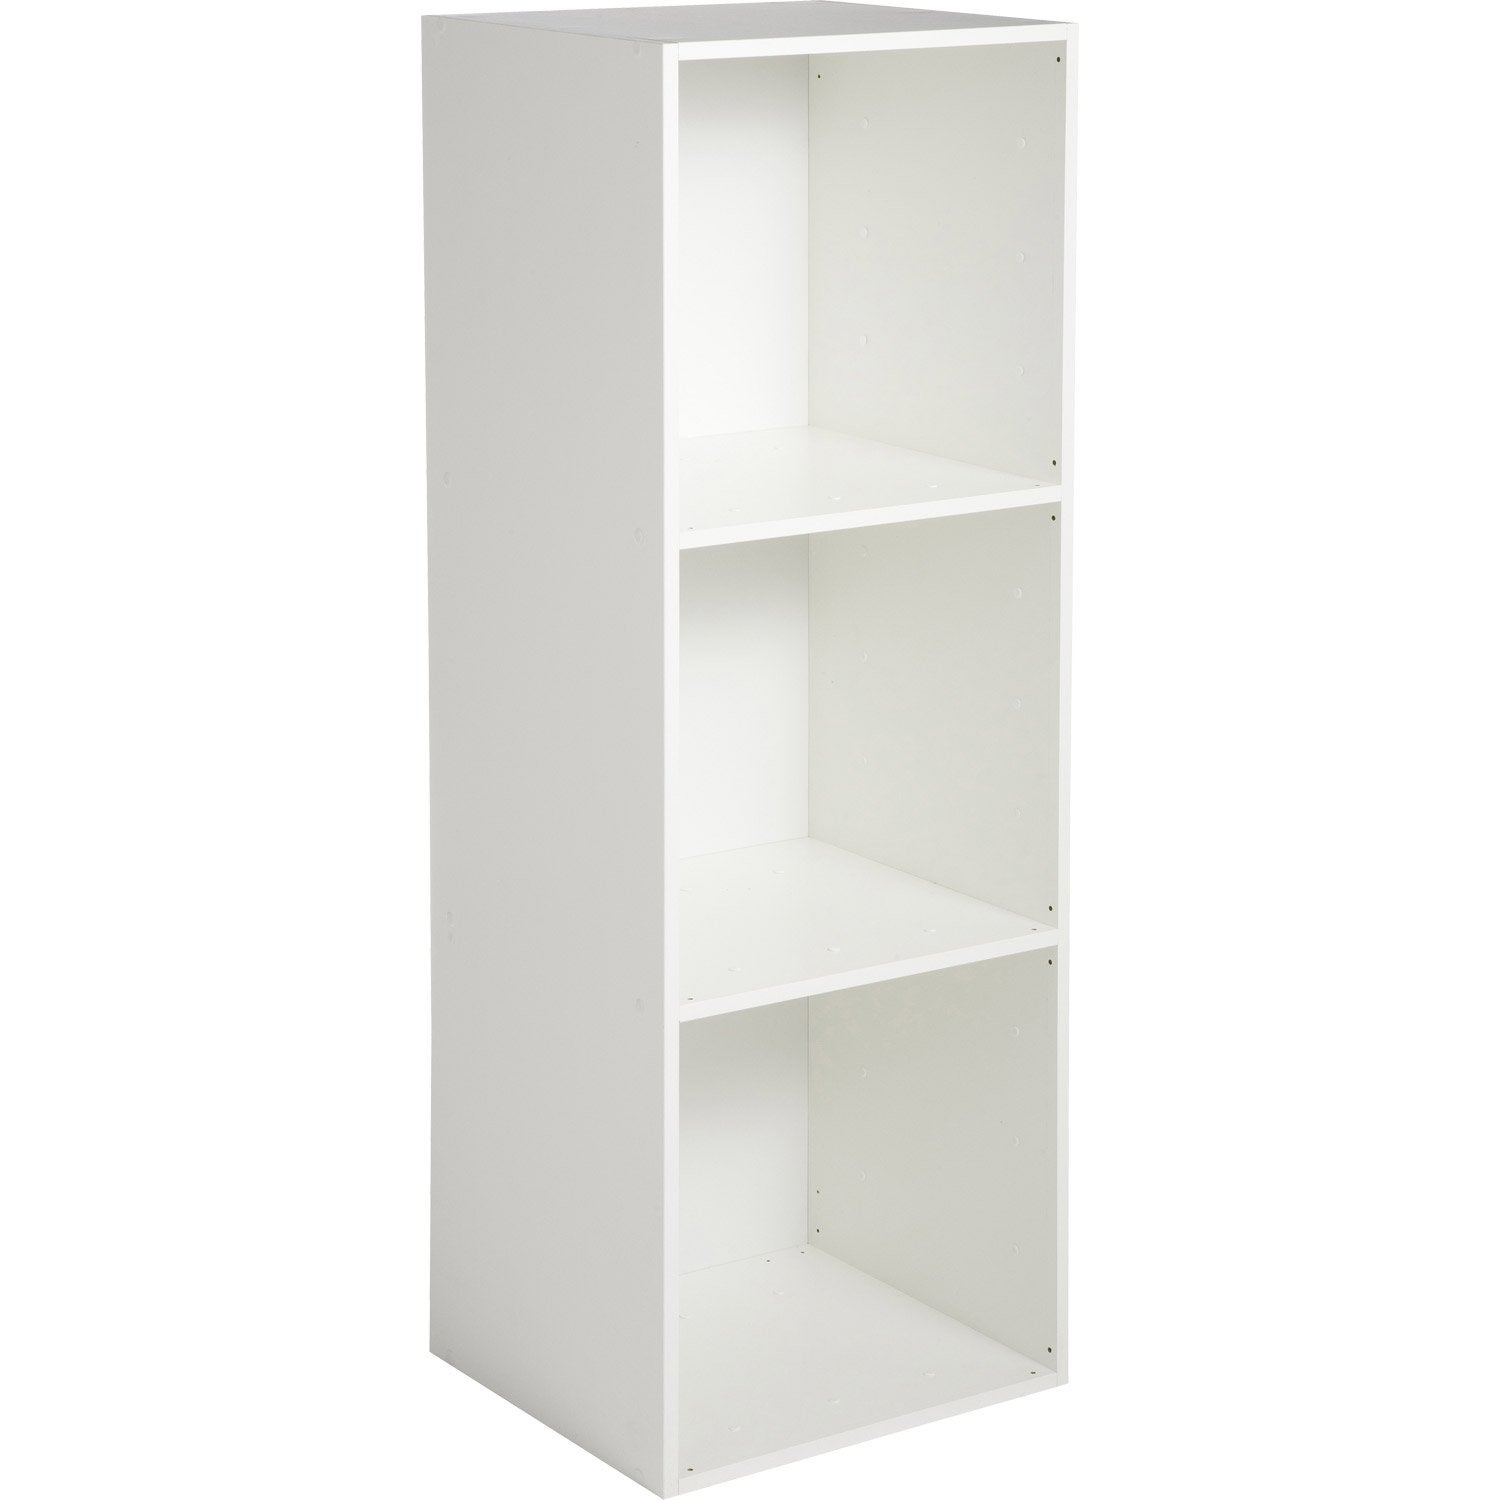 Etag re 3 cases multikaz blanc x x - Etagere a chaussure leroy merlin ...